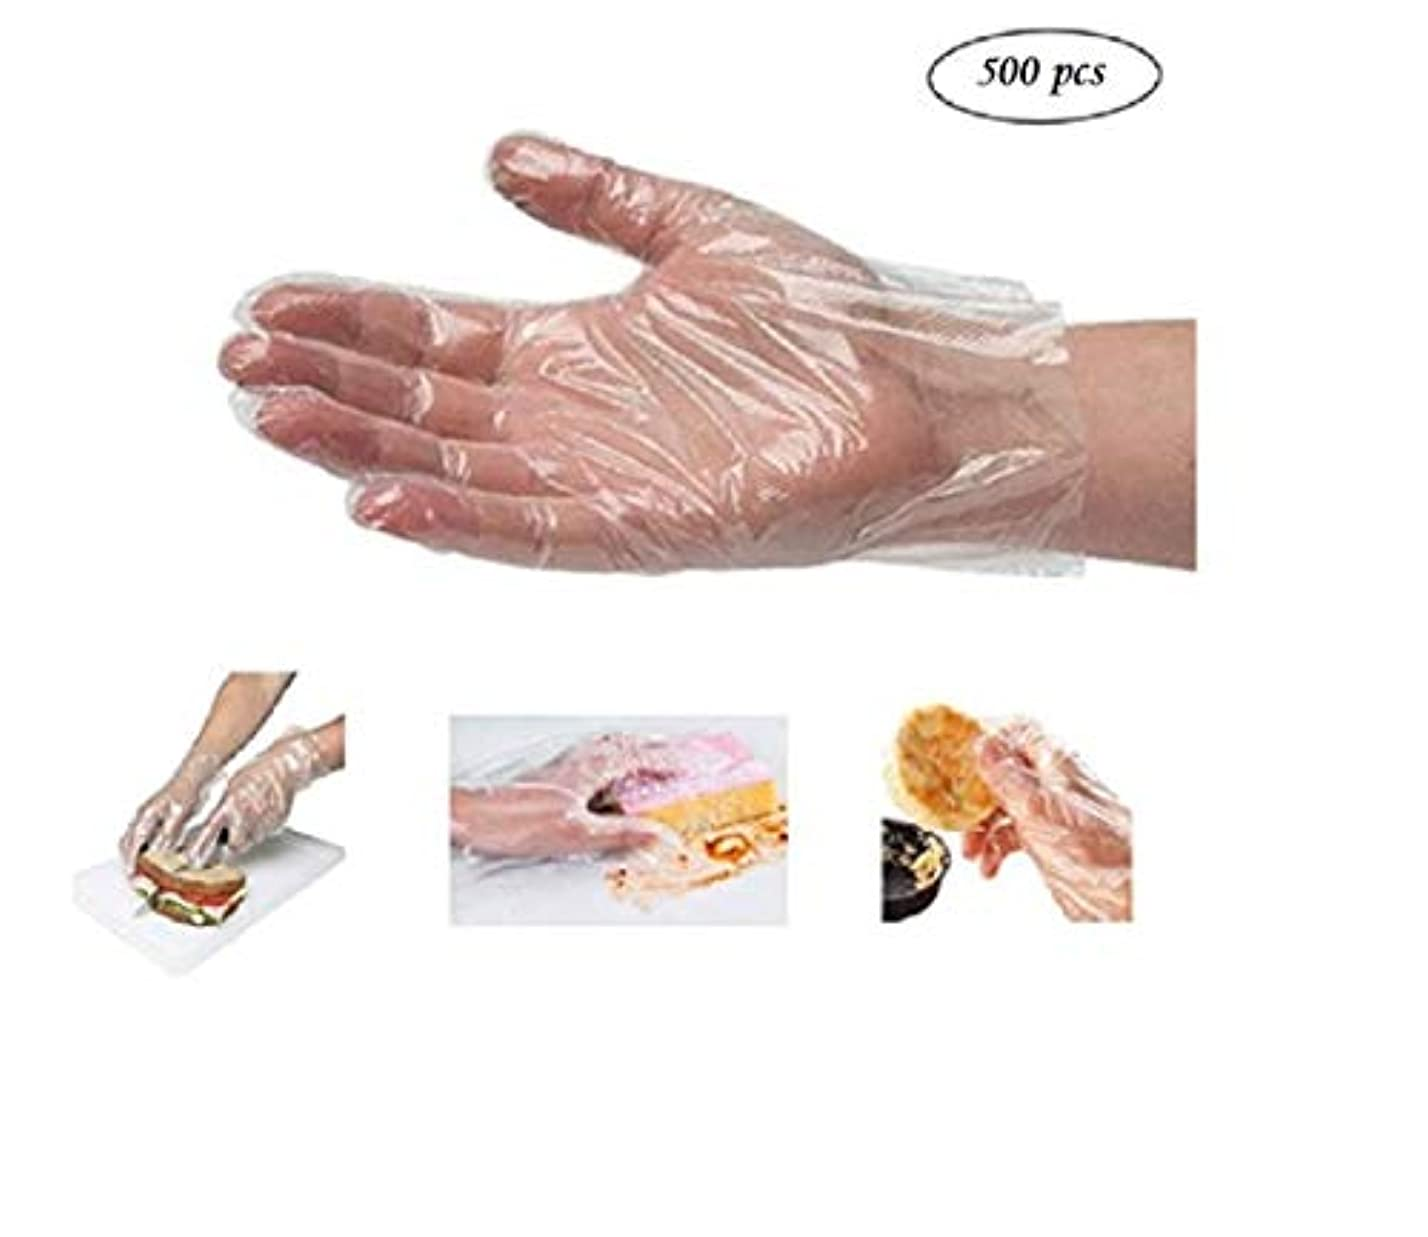 ワイン慣性アラスカ(5) - BYP Clear Disposable Plastic High Density Polyethylene Gloves Sterile Disposable Safety Gloves(500 Sheets...